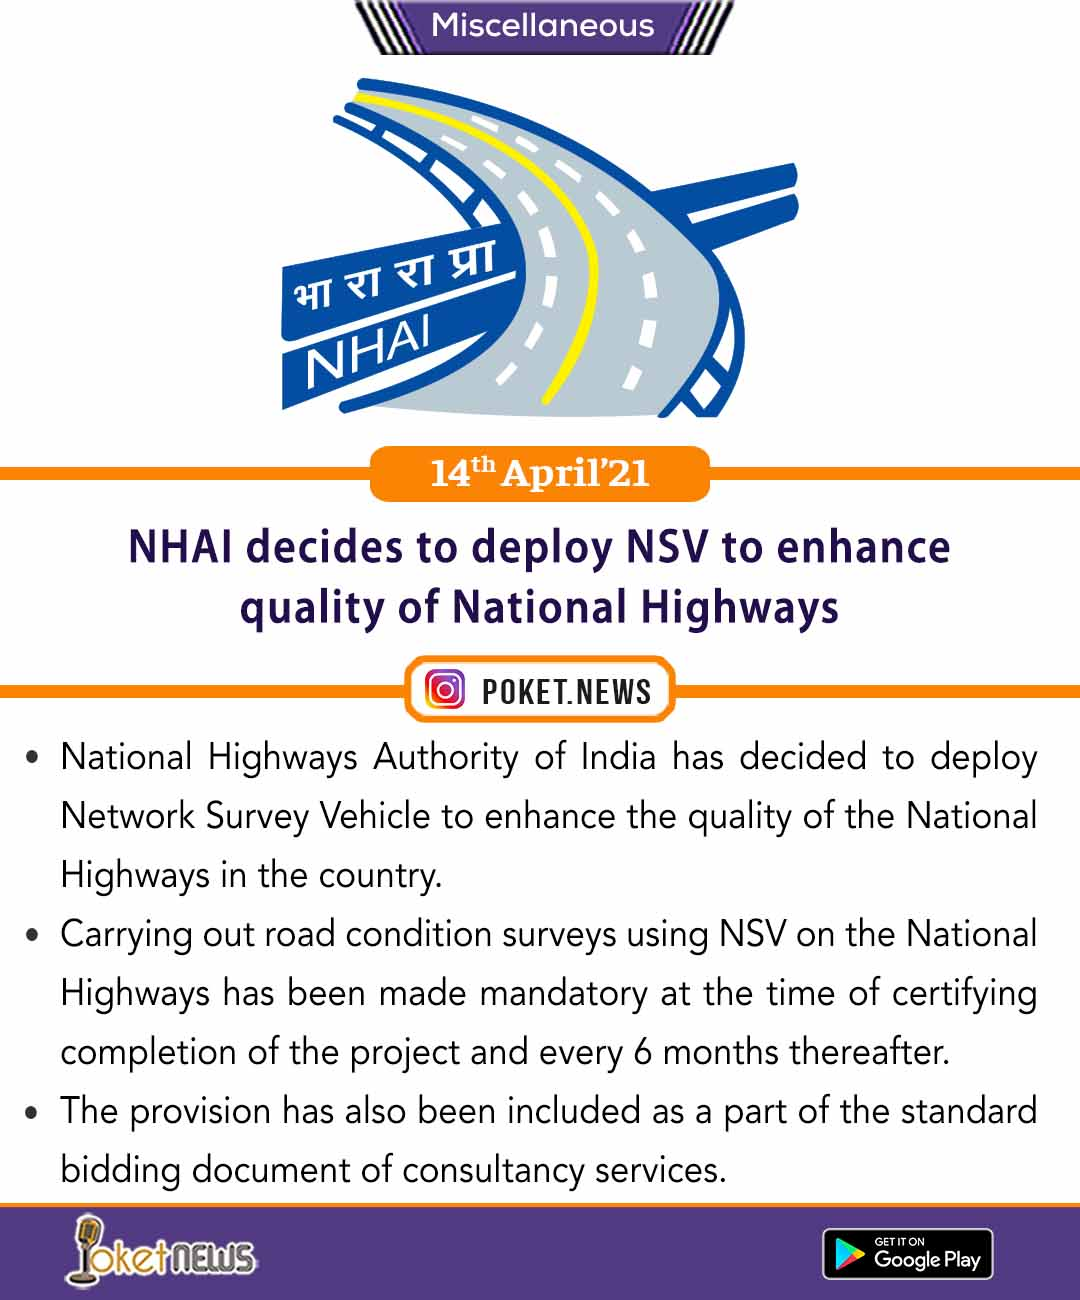 NHAI decides to deploy NSV to enhance quality of National Highways